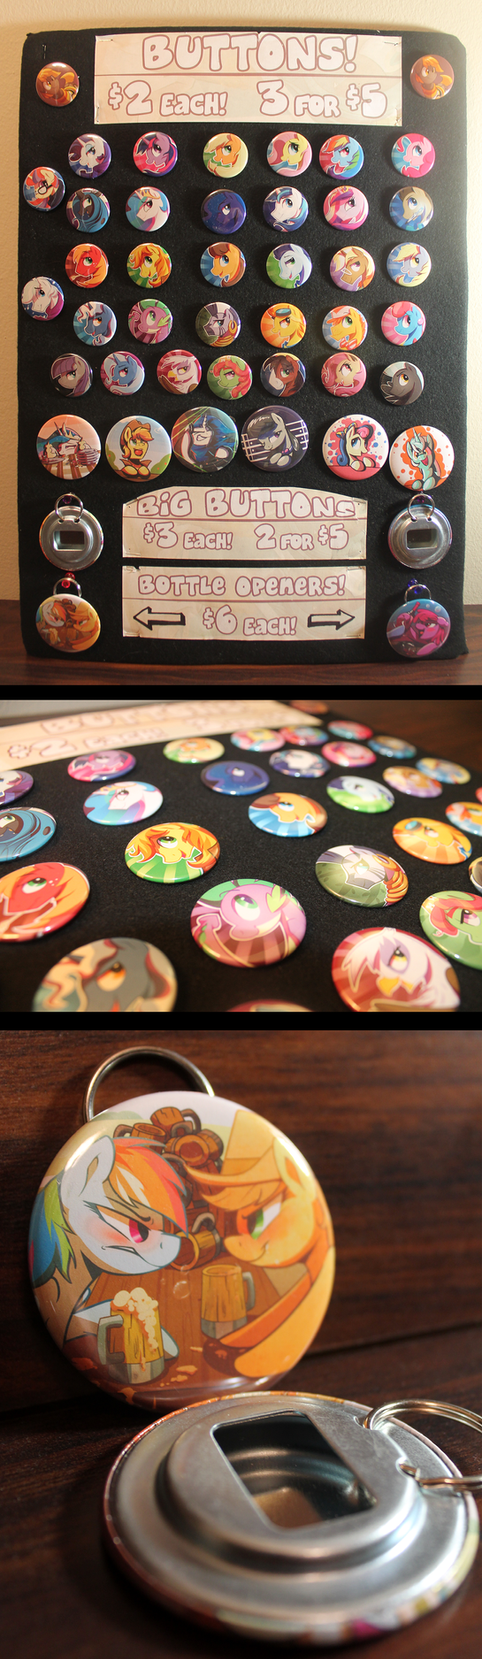 Pony pins! by Littleivy25